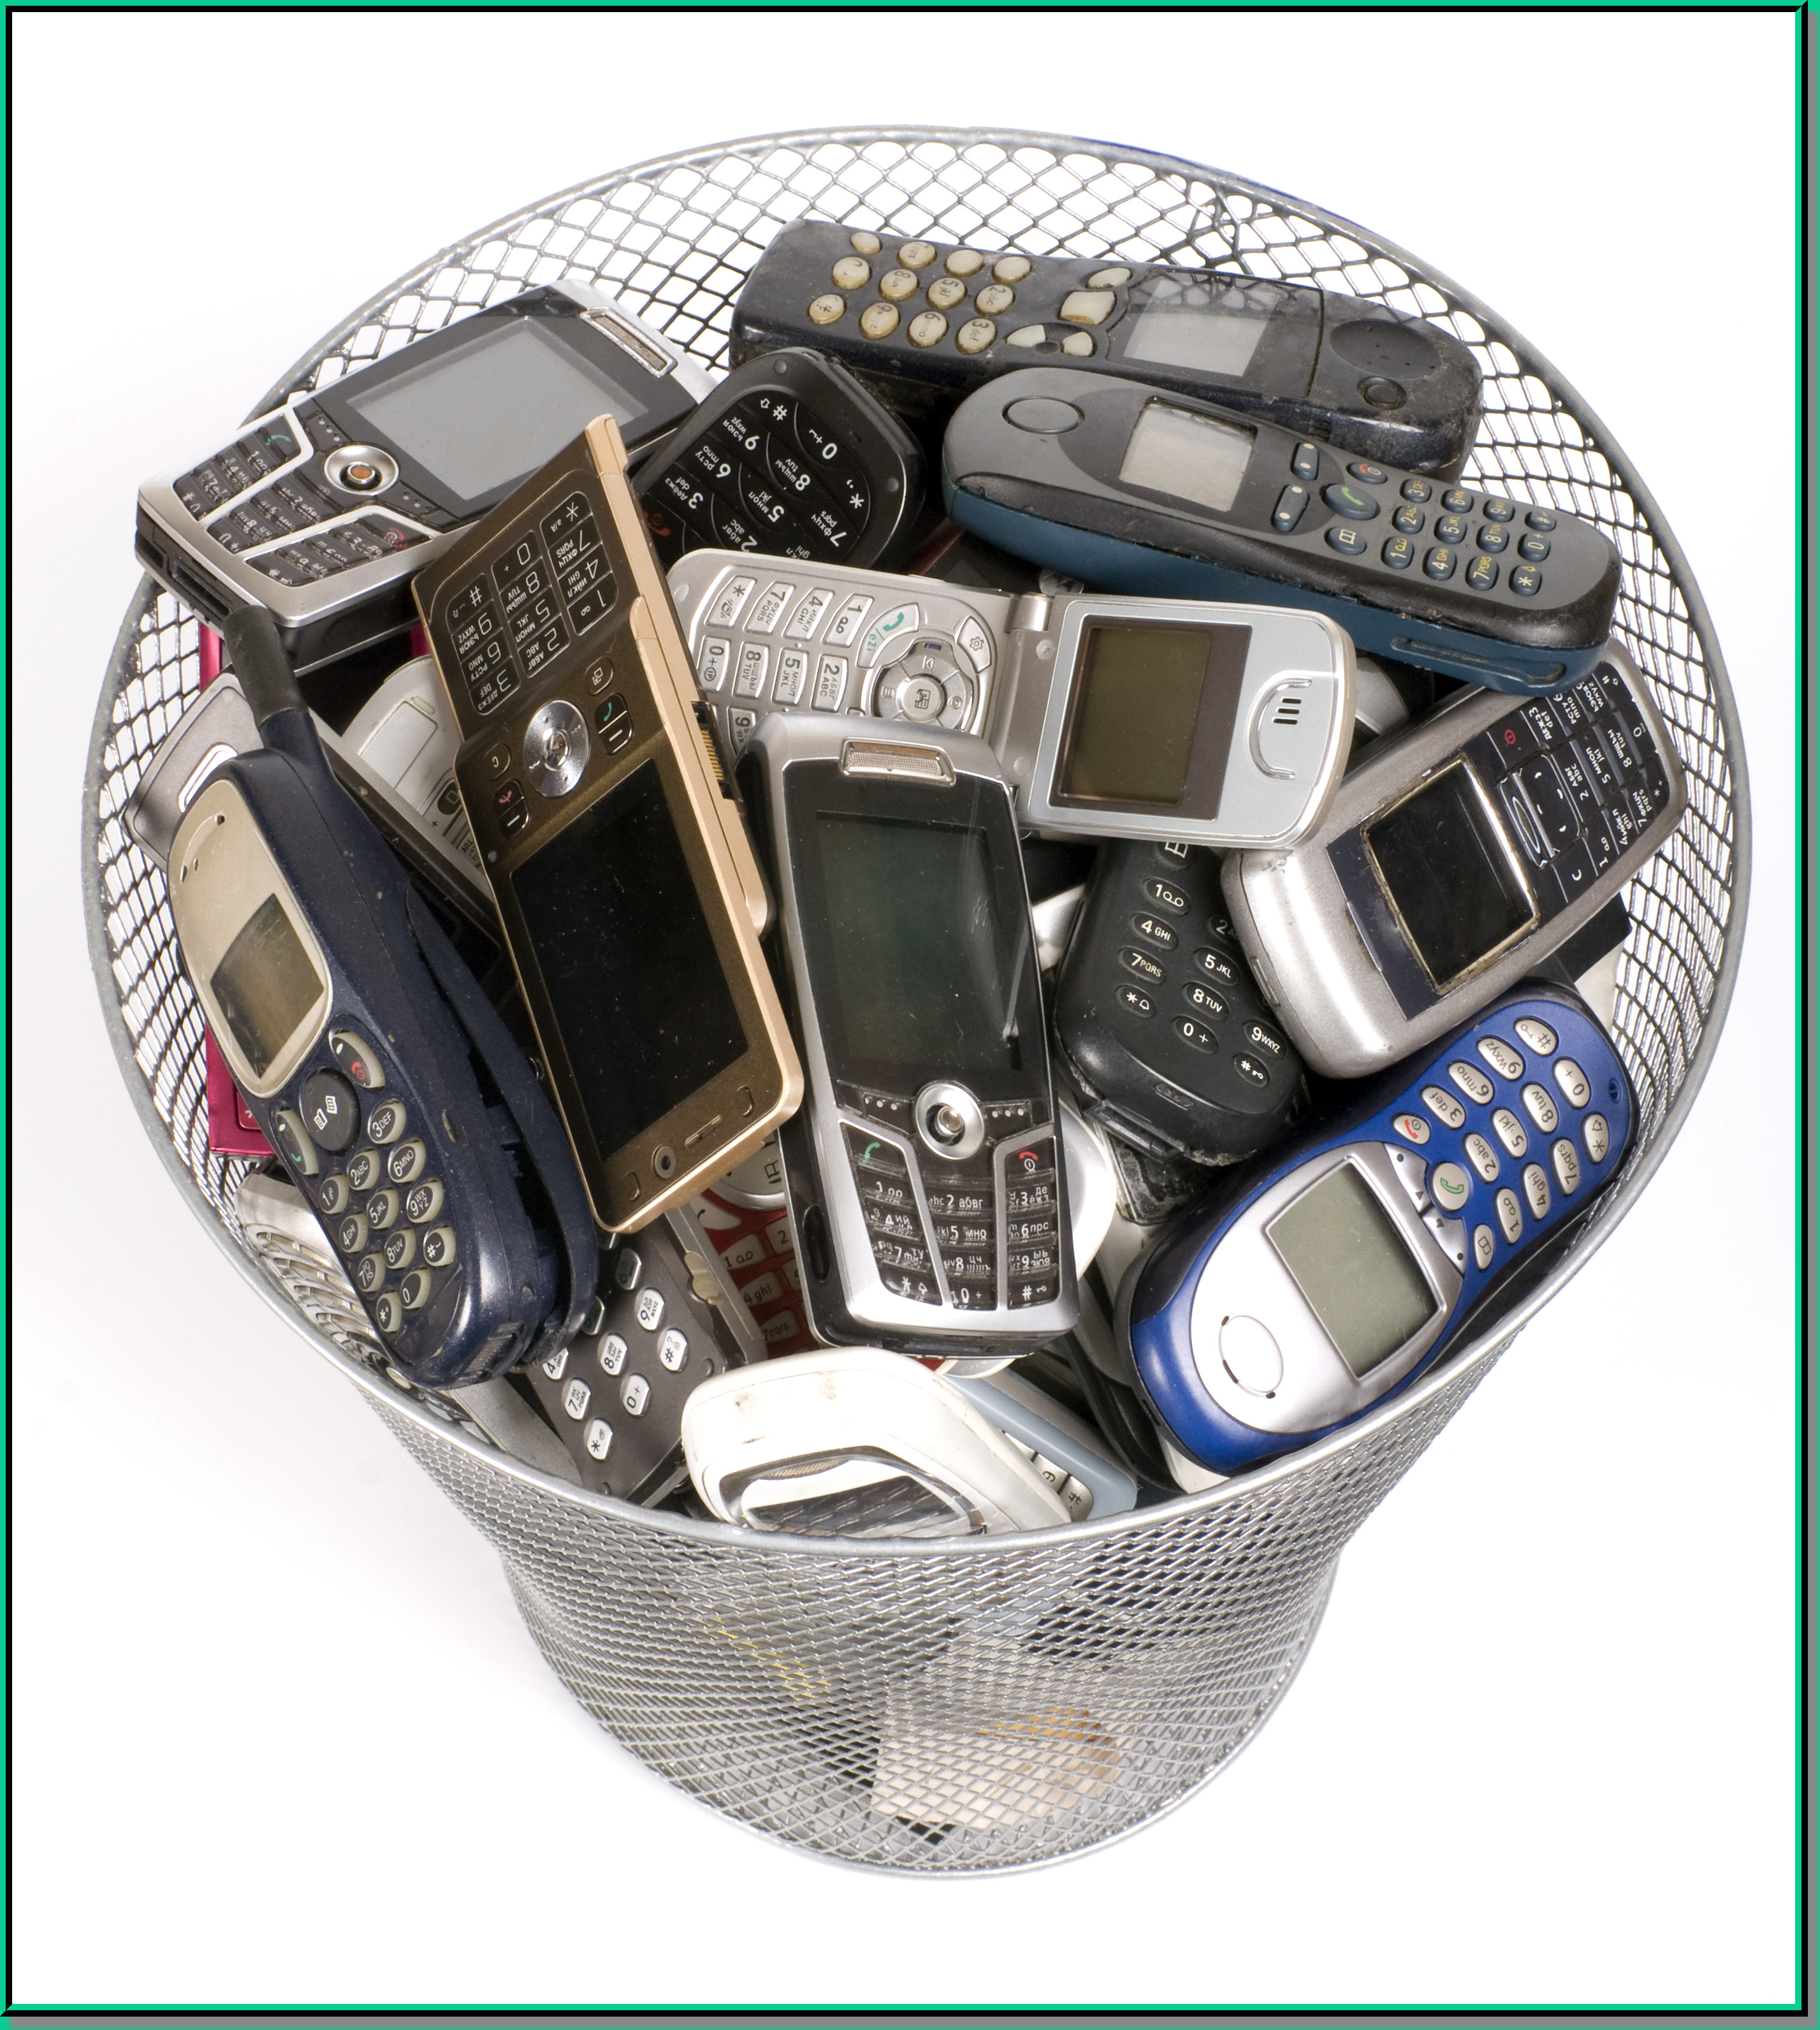 Cell Phones in Trash Can